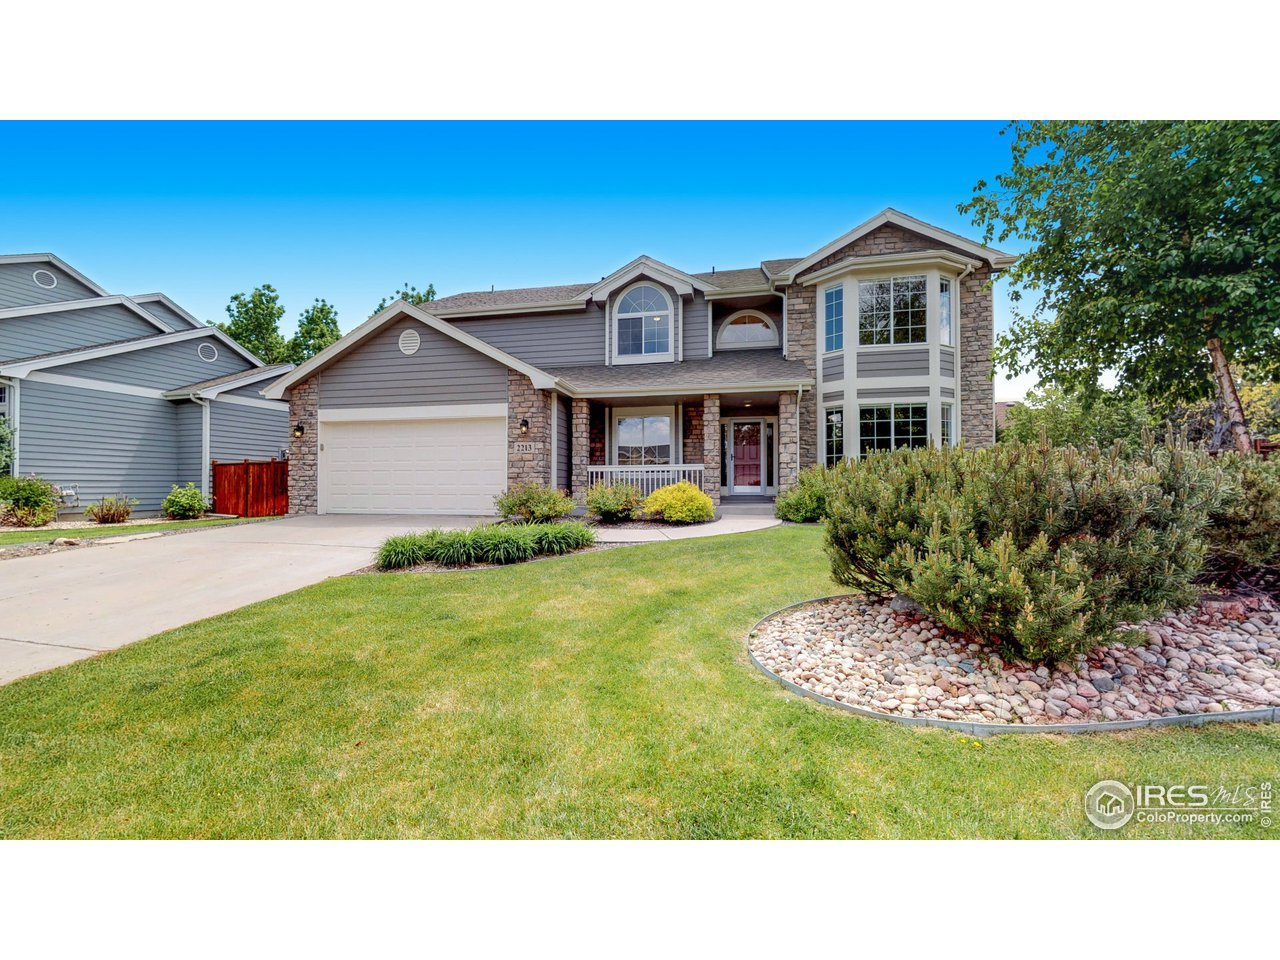 2213 Pole Pine Ln, Fort Collins CO 80528